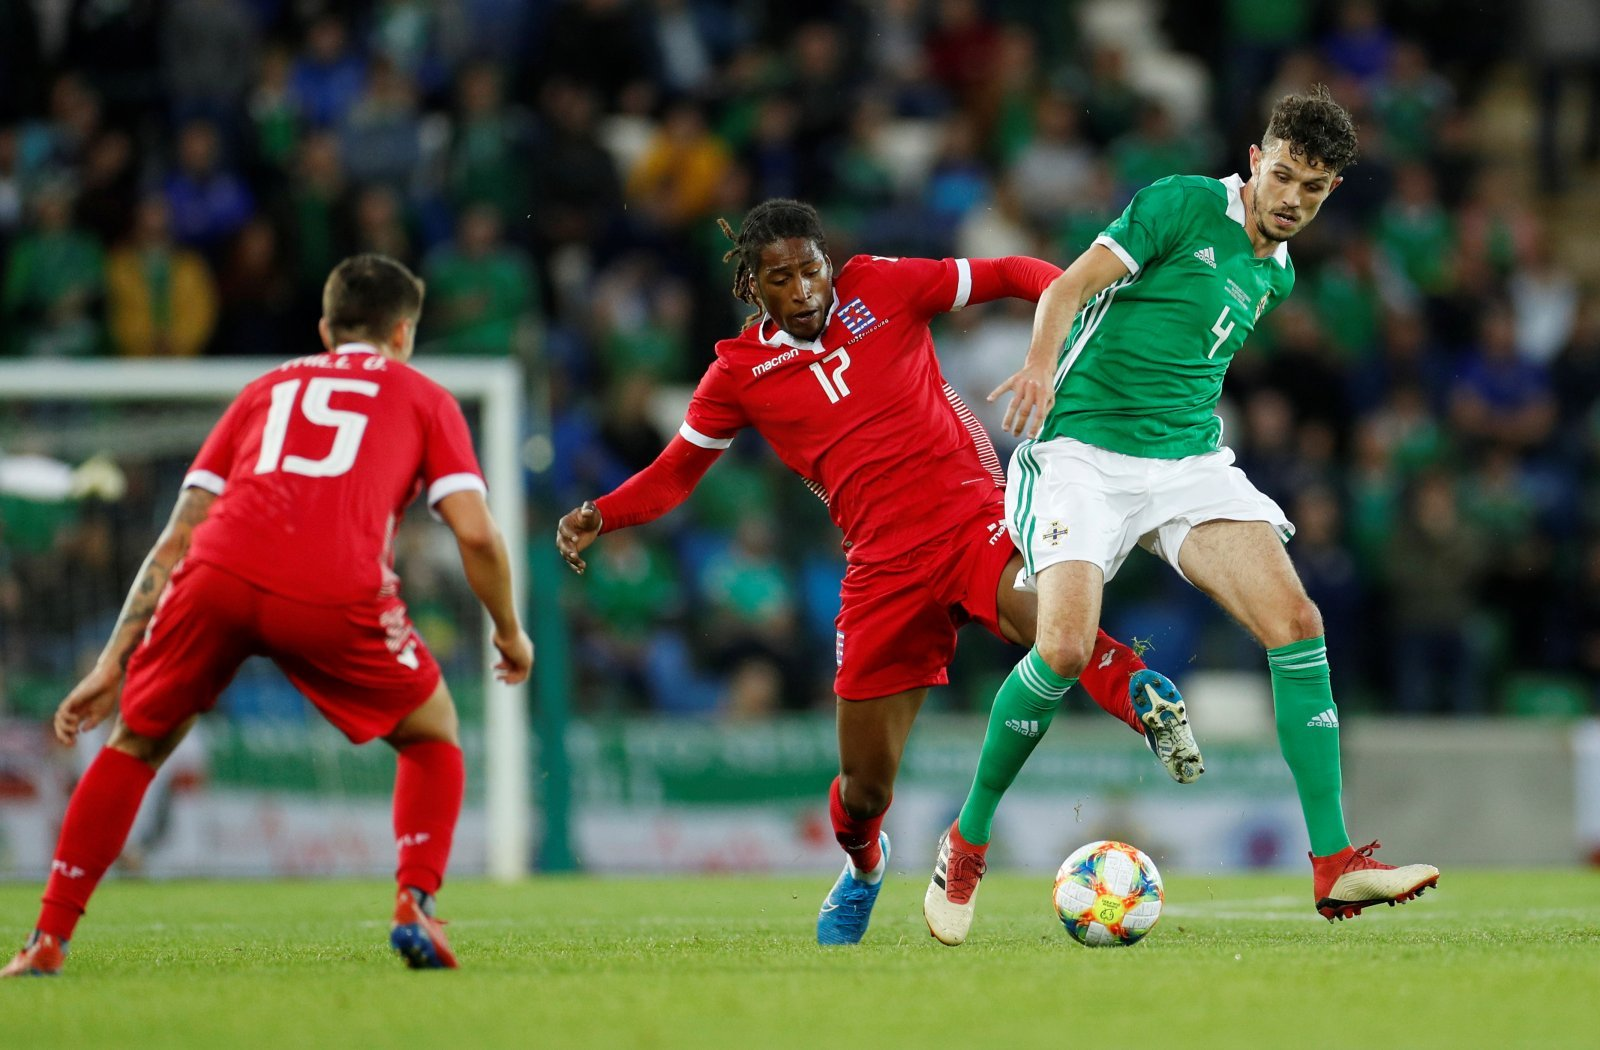 Sunderland: Tom Flanagan praised for his Northern Ireland performance